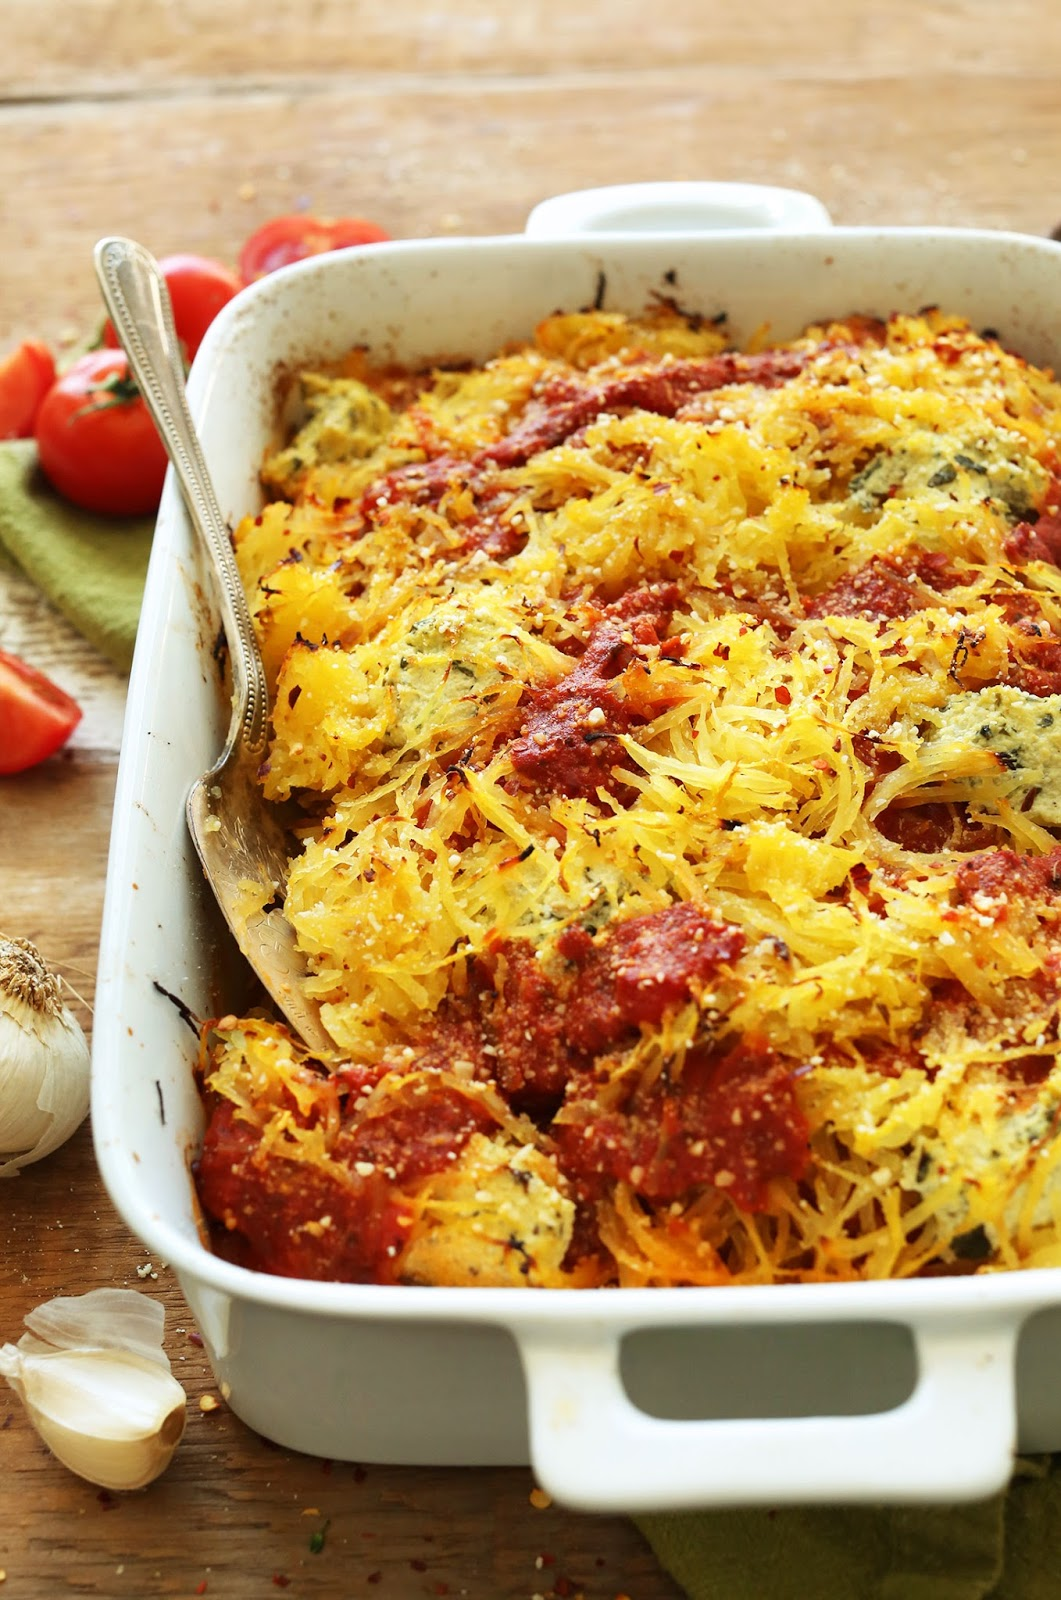 Flavorful, hearty 10-ingredient Spaghetti Squash Lasagna